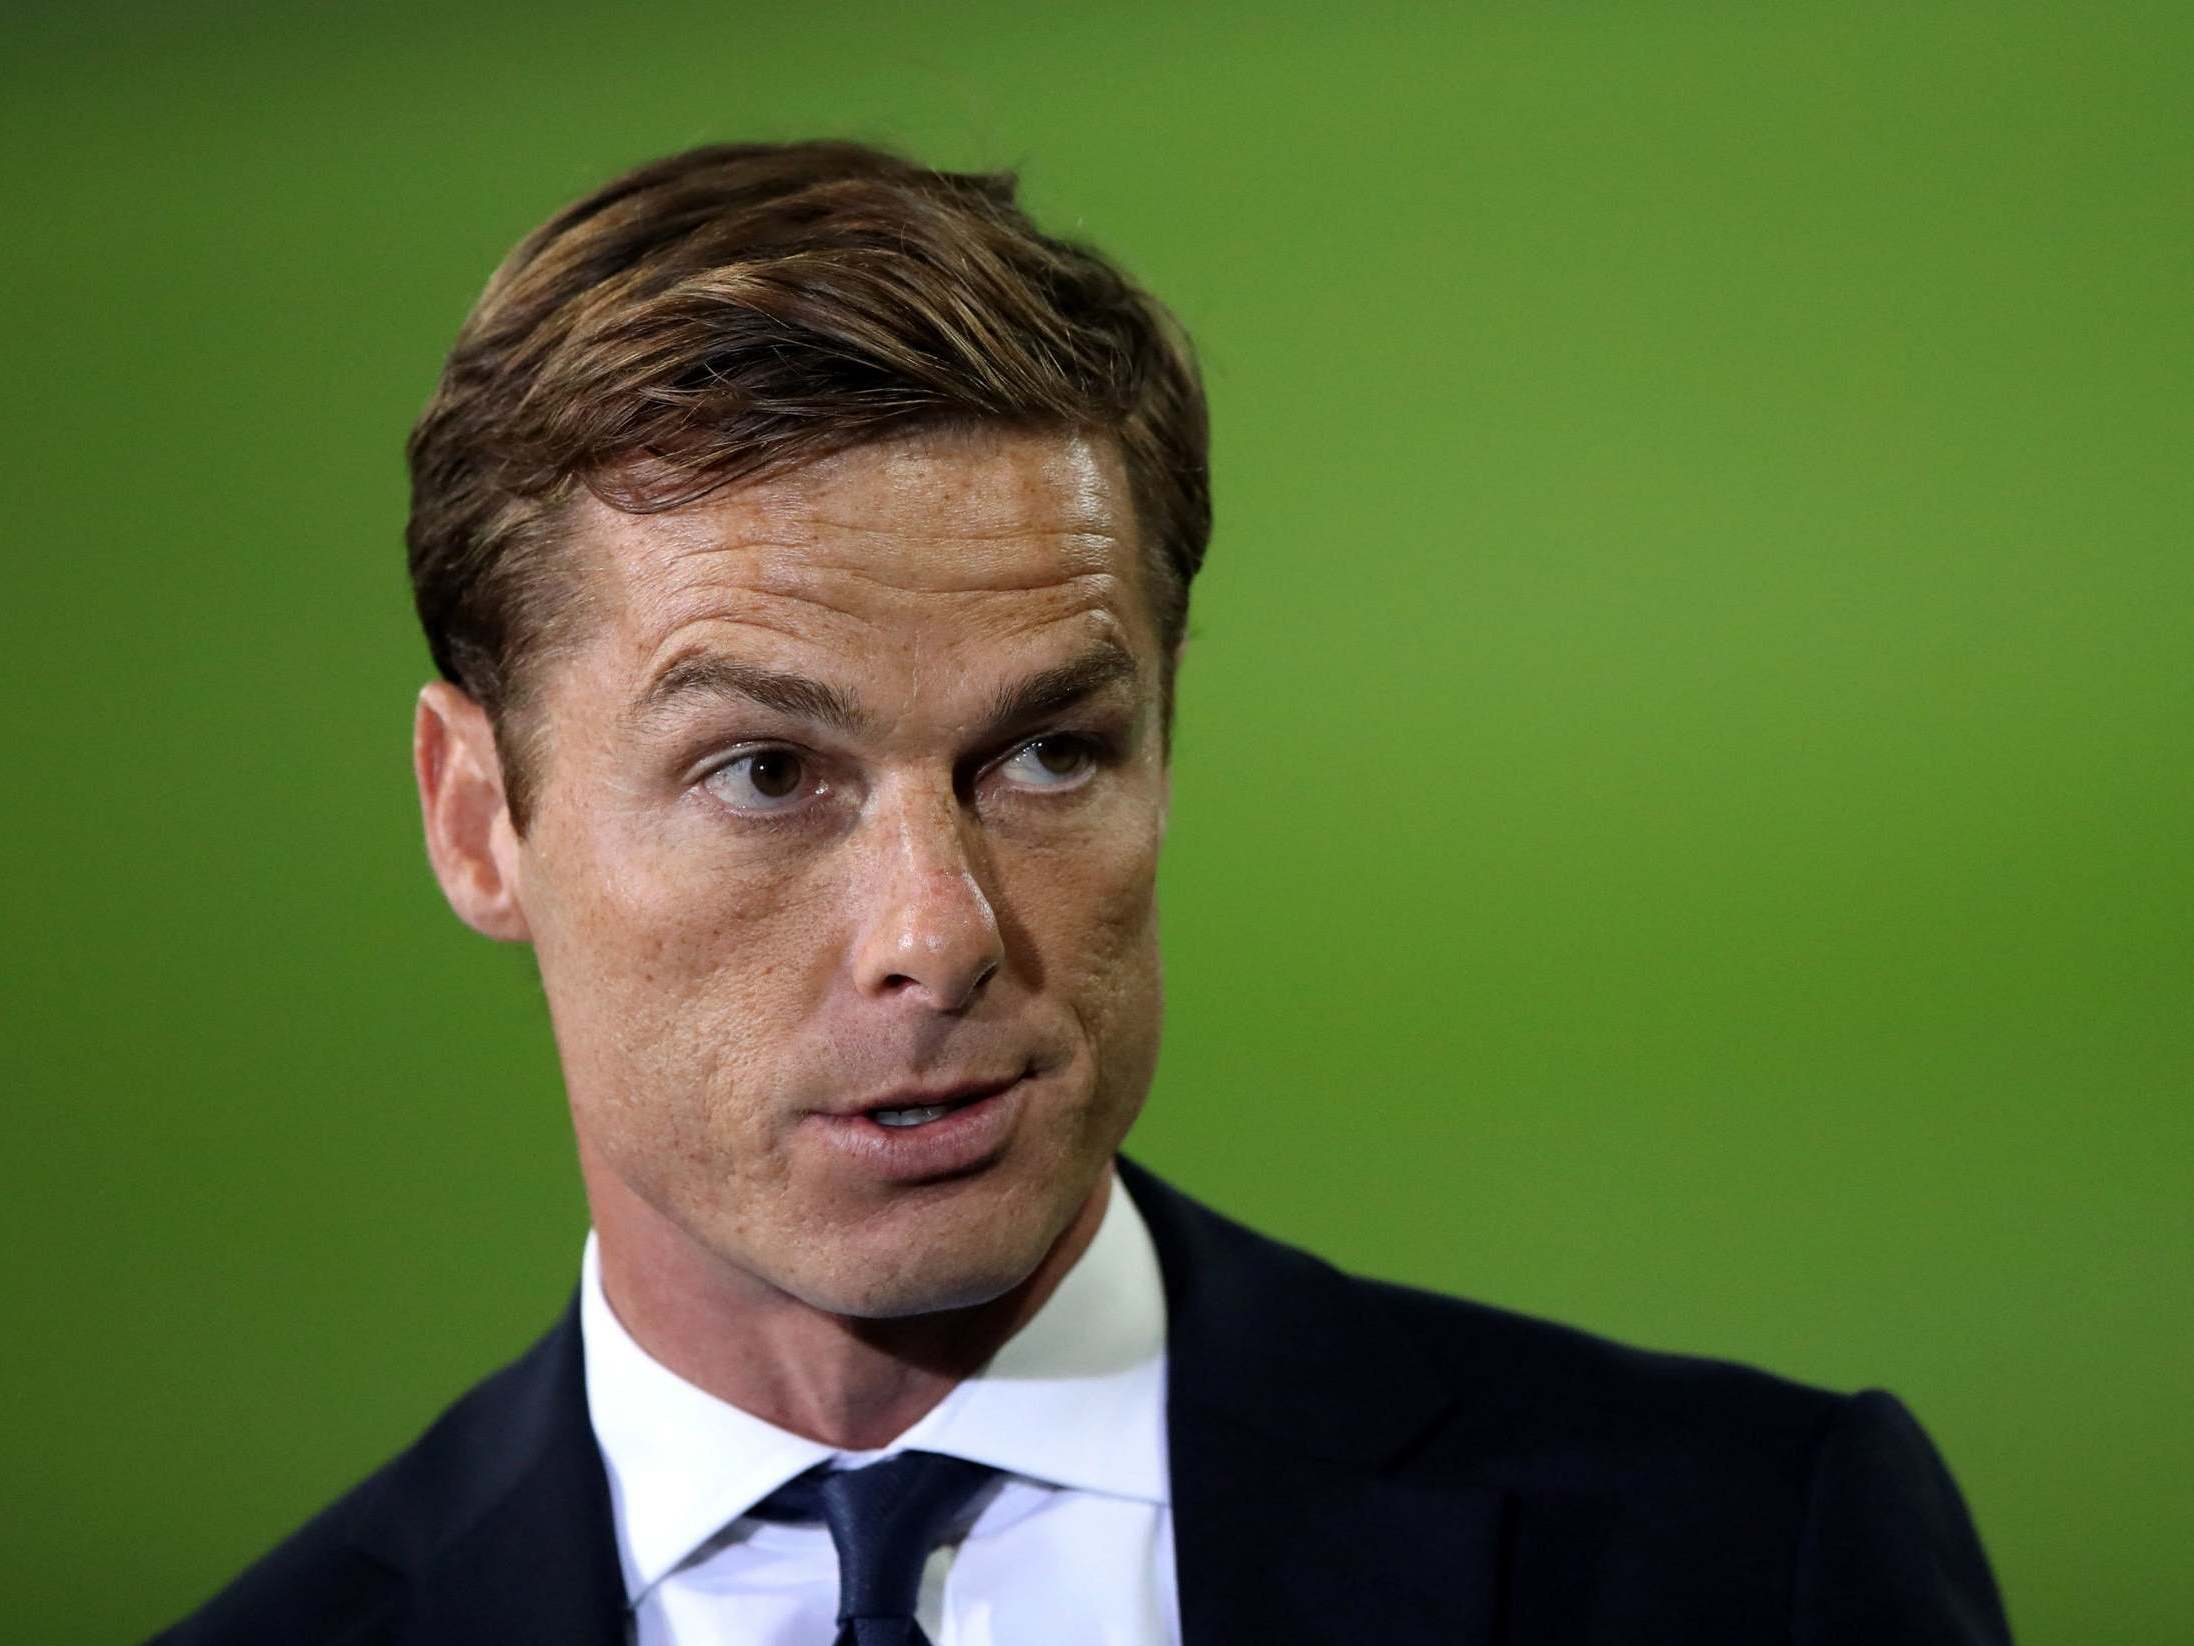 Fulham will avoid overhauling squad after promotion, says Scott Parker